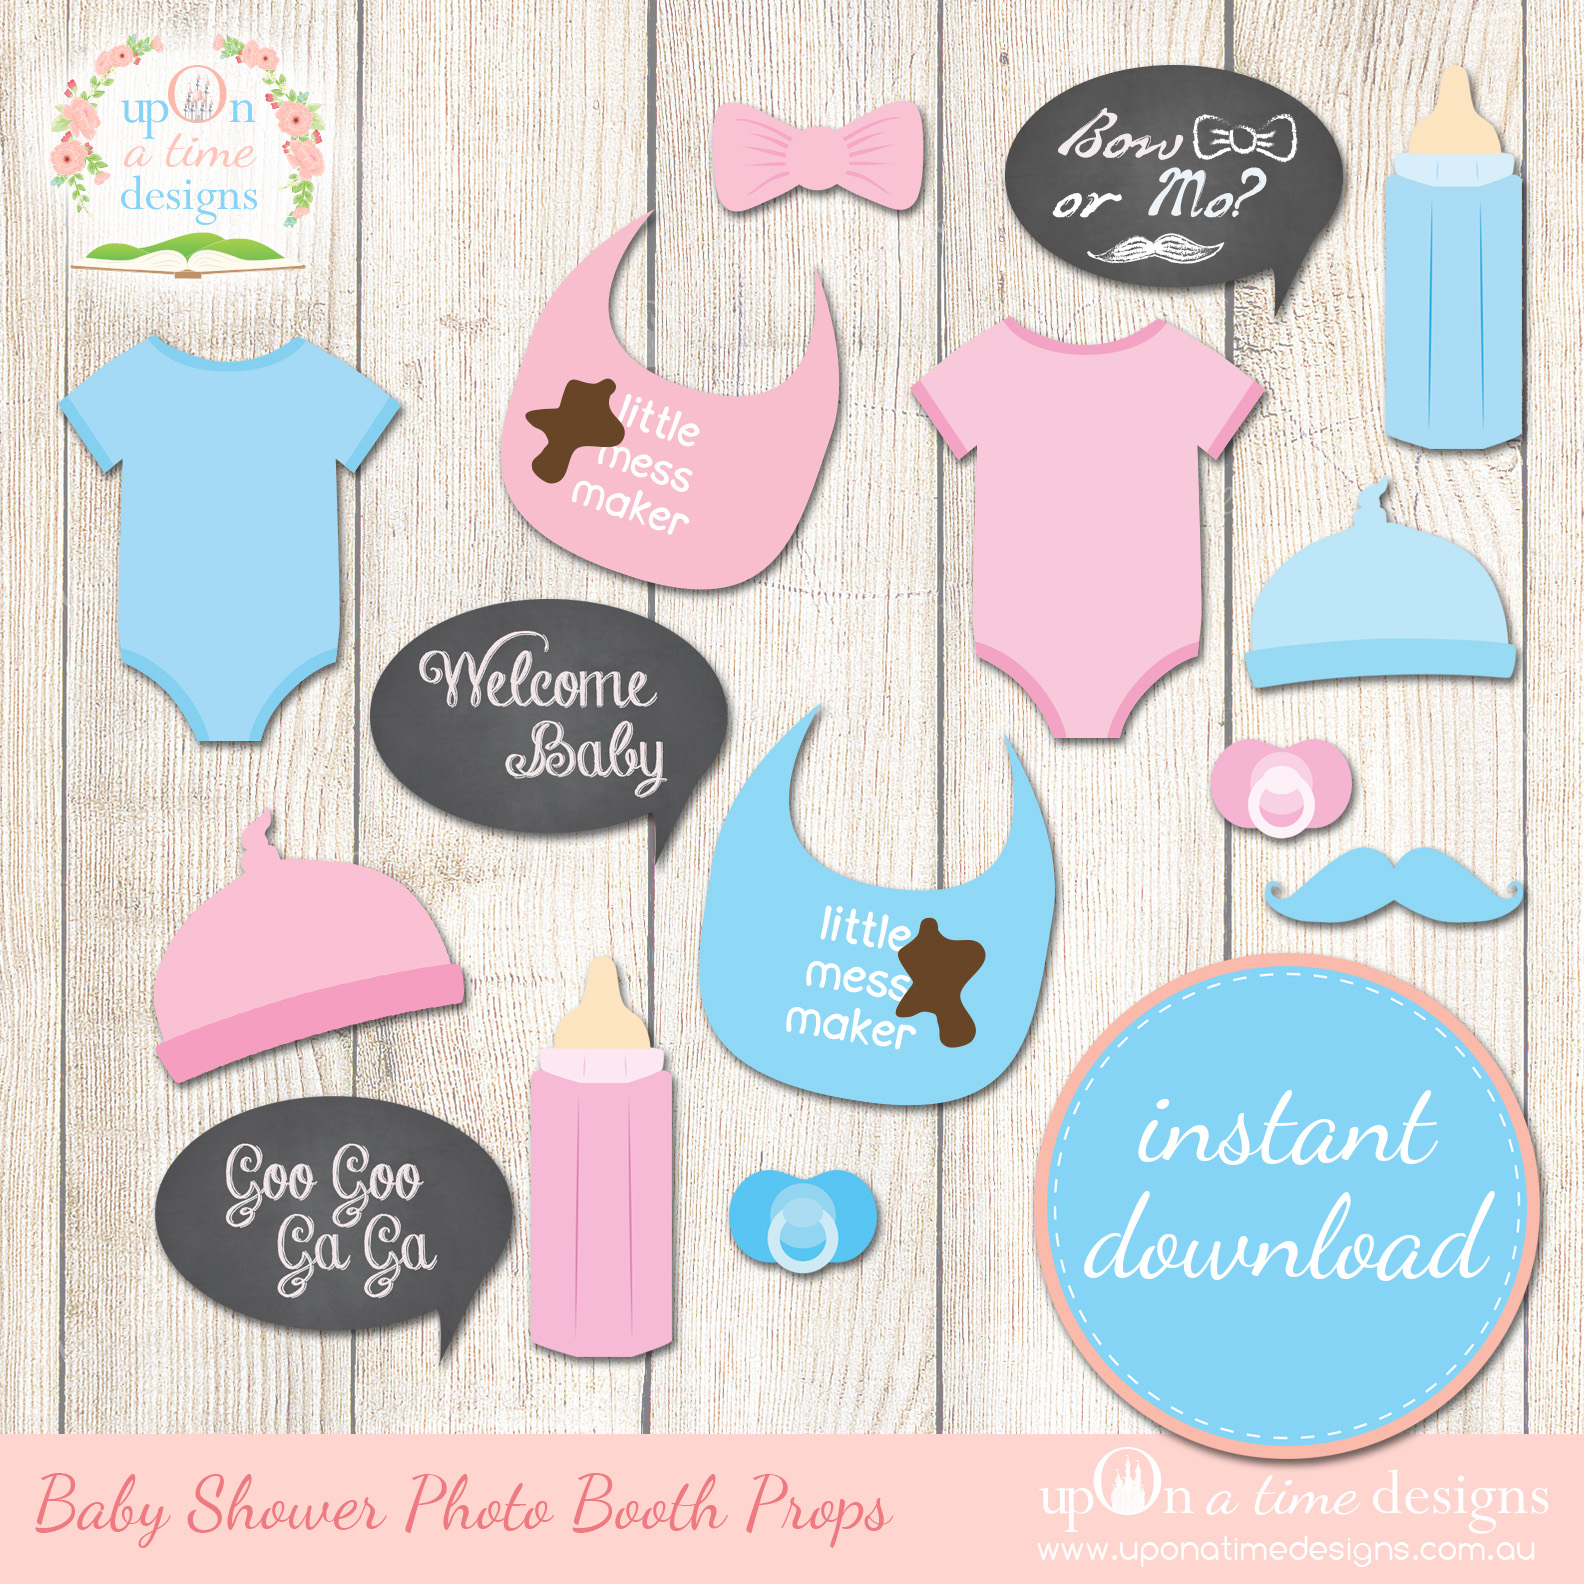 8 Best Images Of Free Printable Baby Shower Props Booth Kohler - Free Printable Baby Shower Photo Booth Props